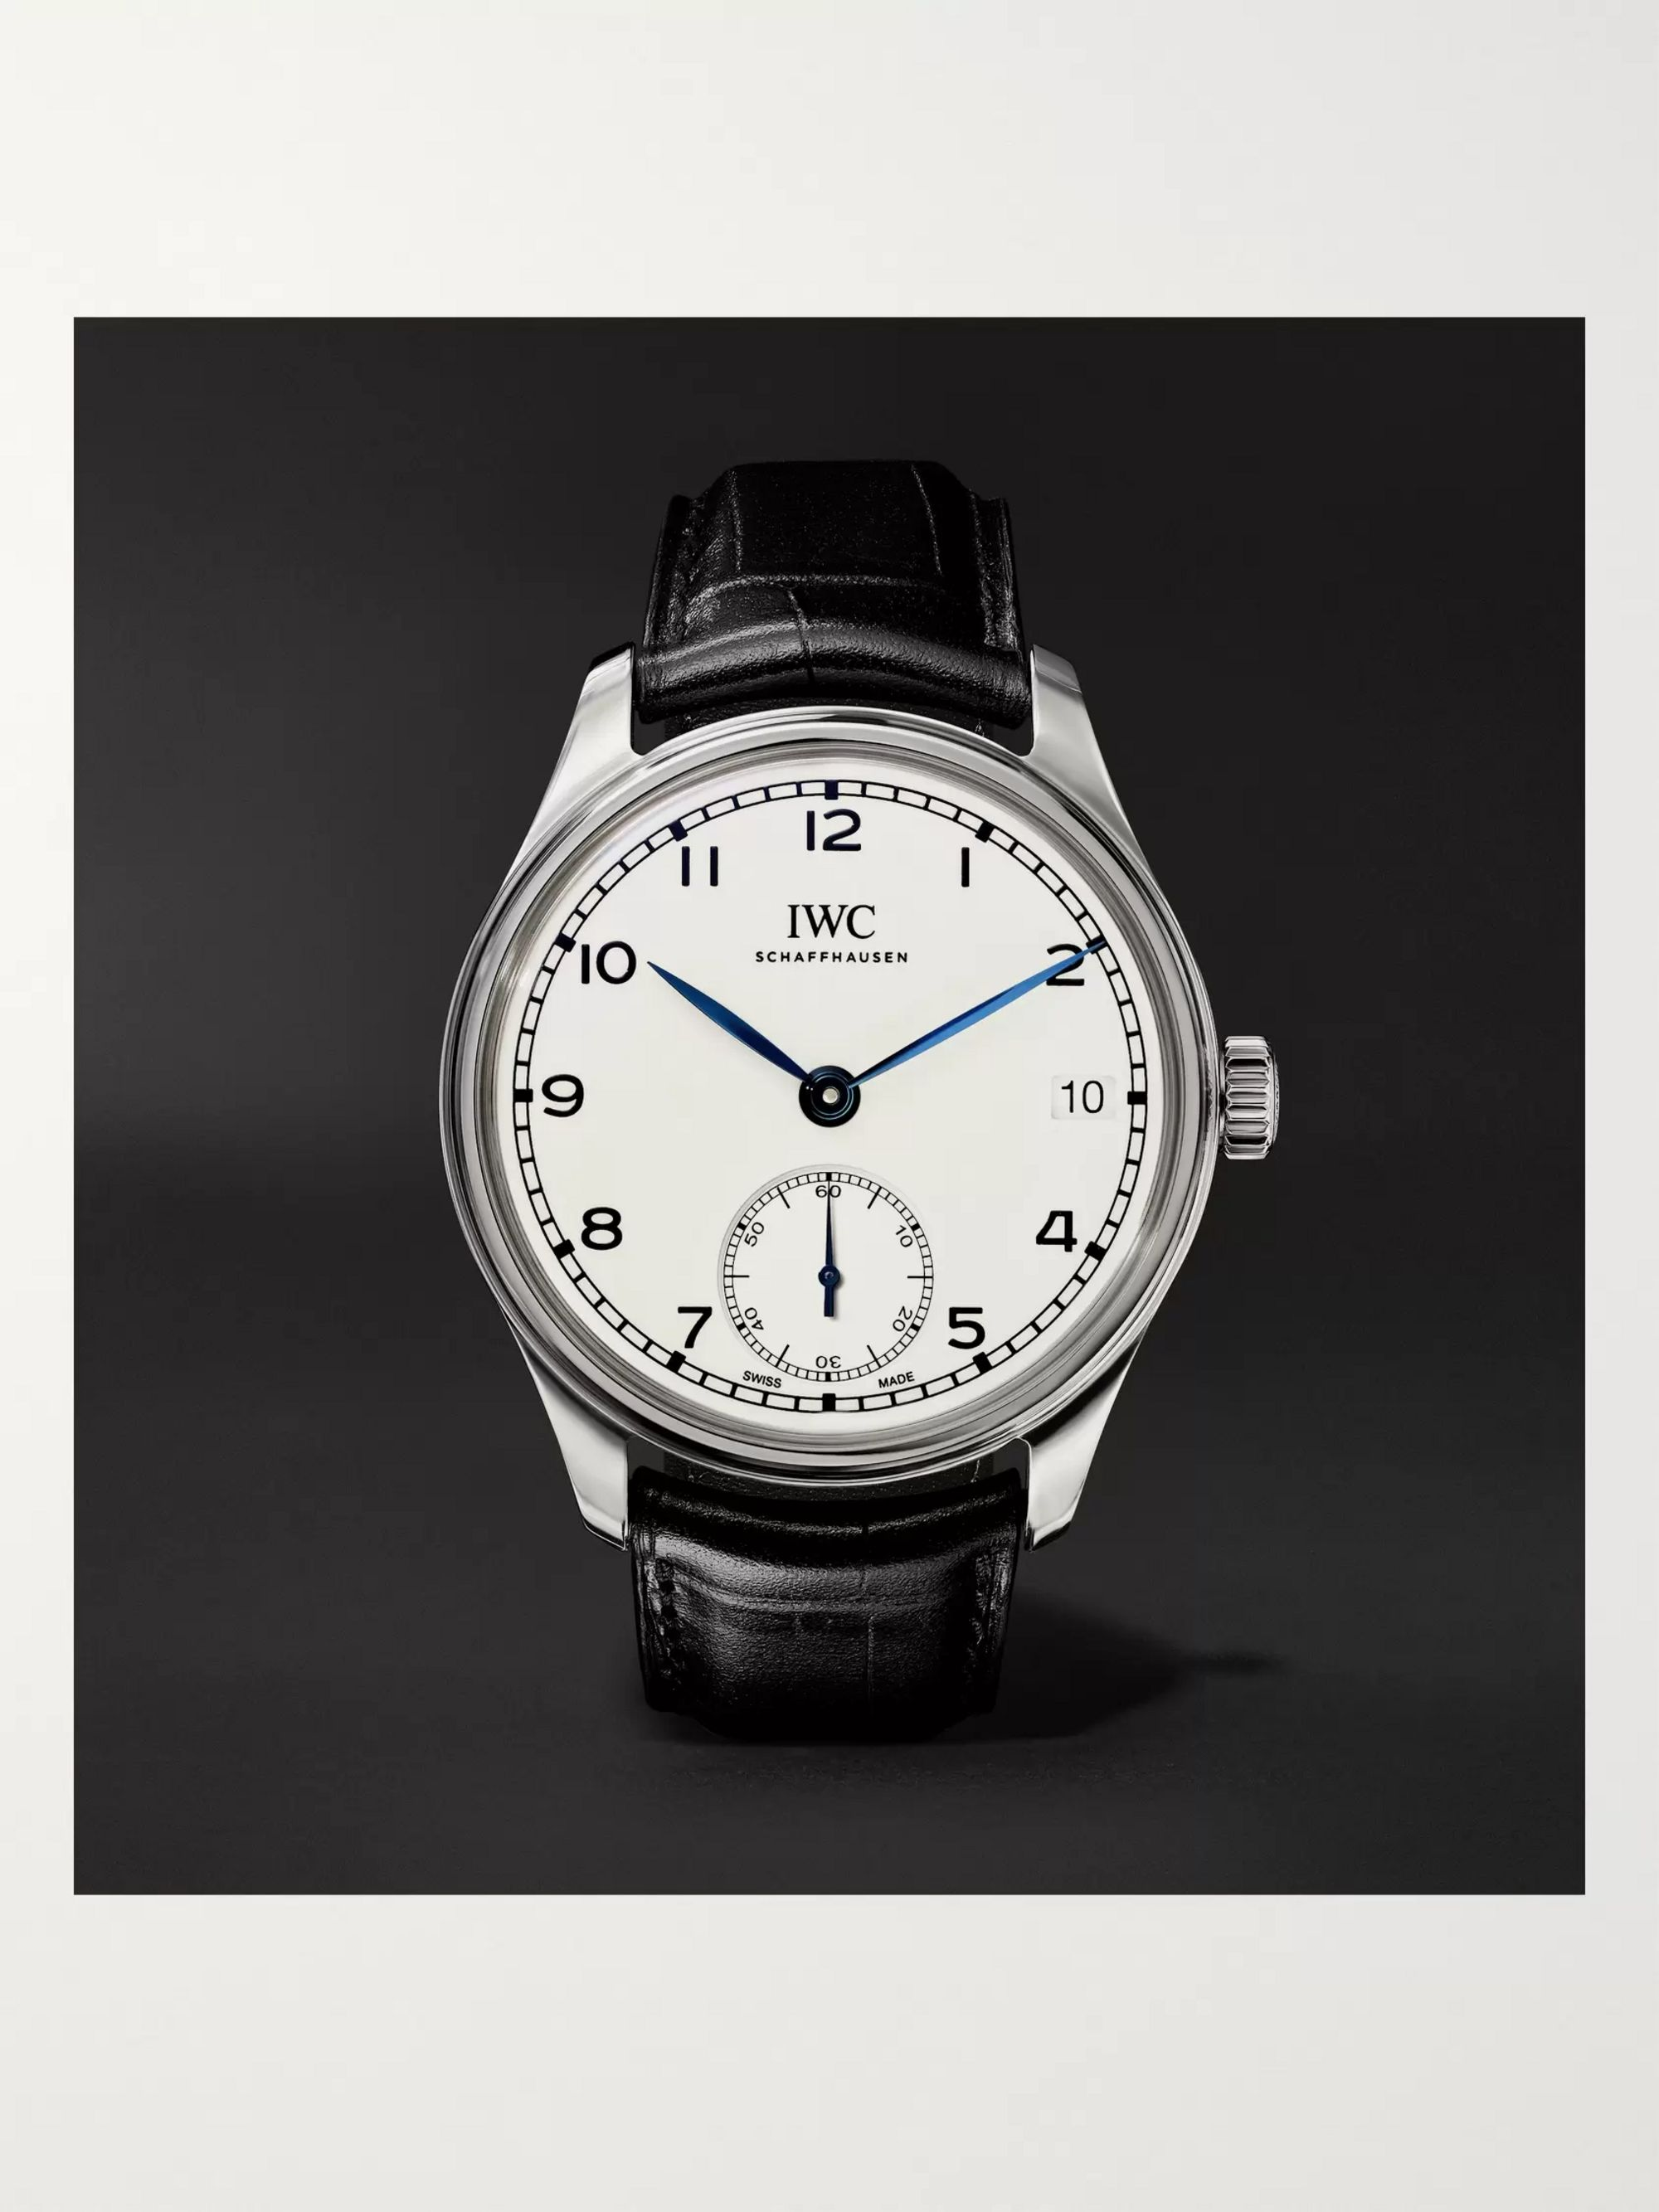 IWC SCHAFFHAUSEN Portugieser 8-Day 150 Years Limited Edition Hand-Wound 43mm Stainless Steel and Alligator Watch